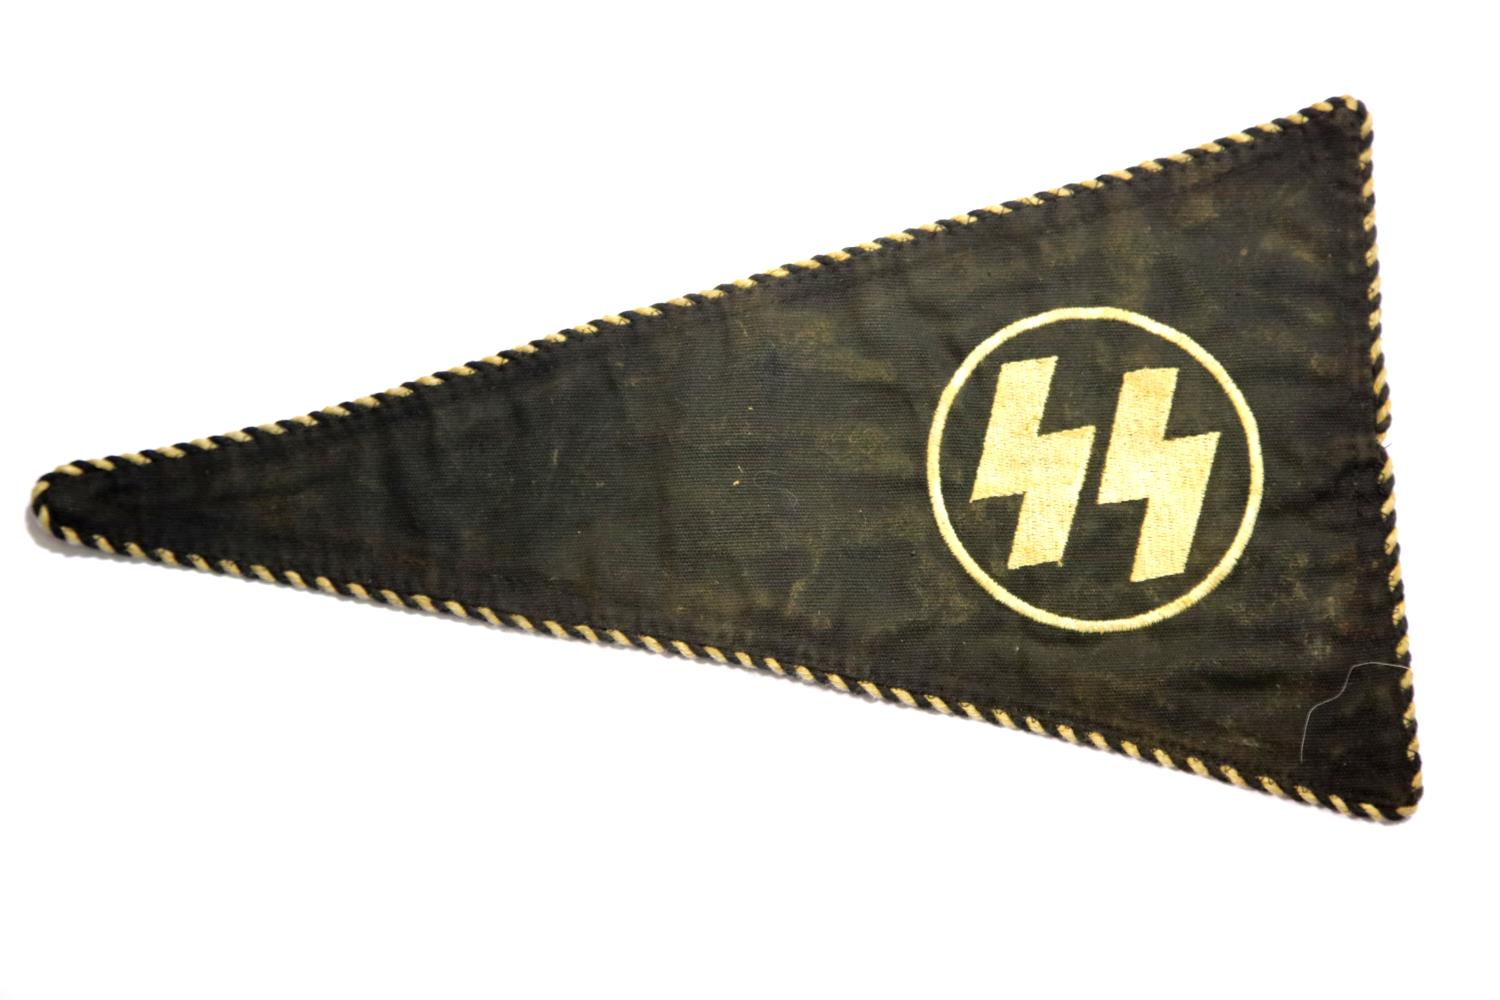 Lot 3019 - German SS type pennant, L: 34 cm. P&P Group 1 (£14+VAT for the first lot and £1+VAT for subsequent